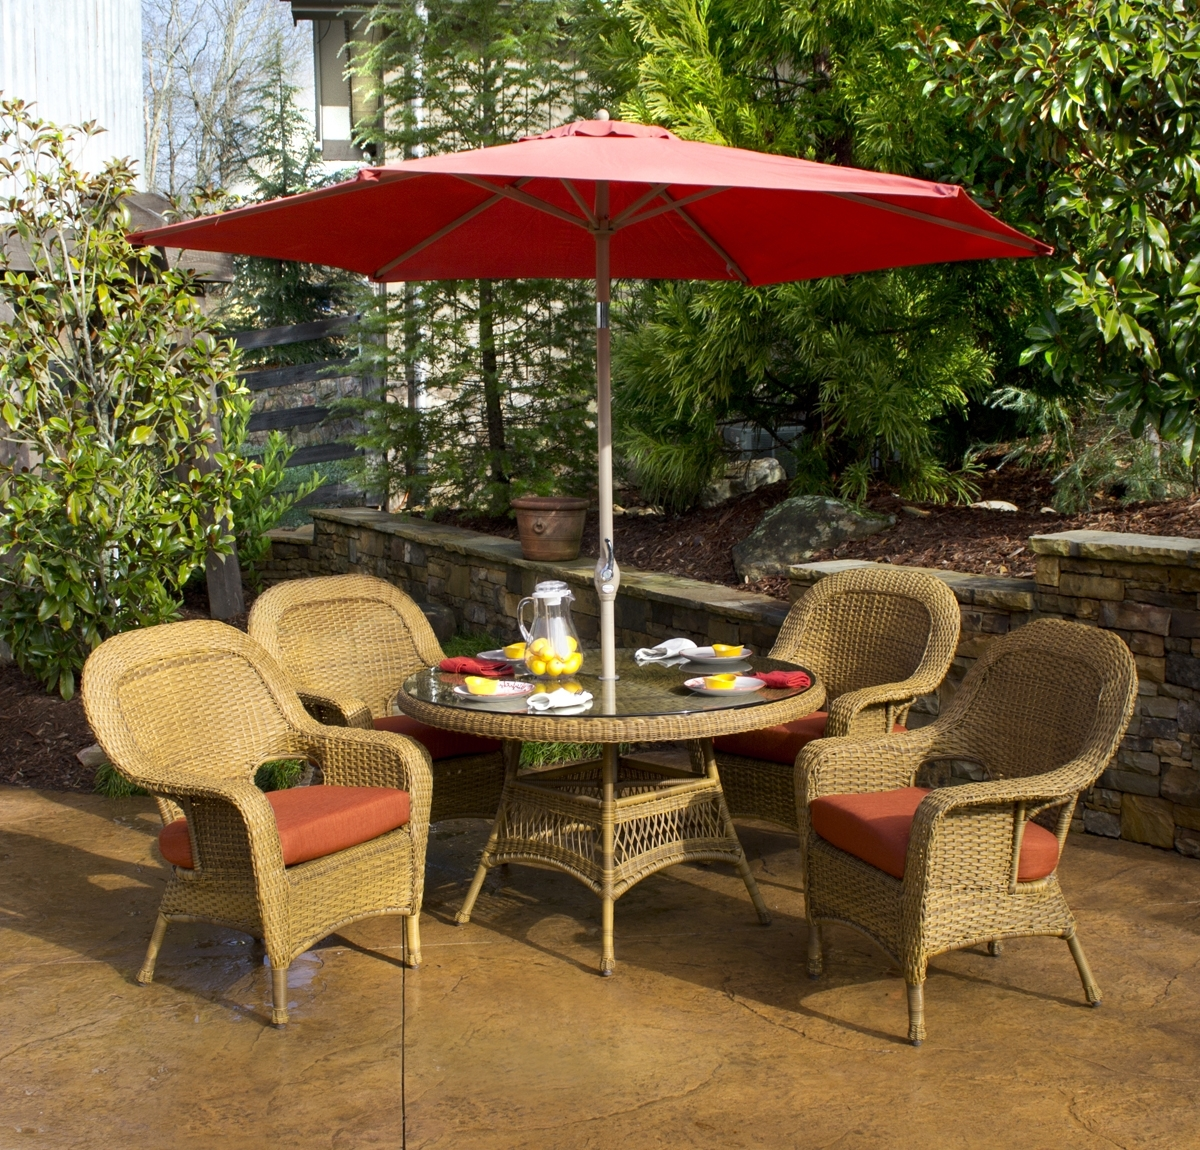 Patio Furniture With Umbrellas Pertaining To Favorite Cute Umbrella For Patio Table : Life On The Move – Umbrella For (View 10 of 20)